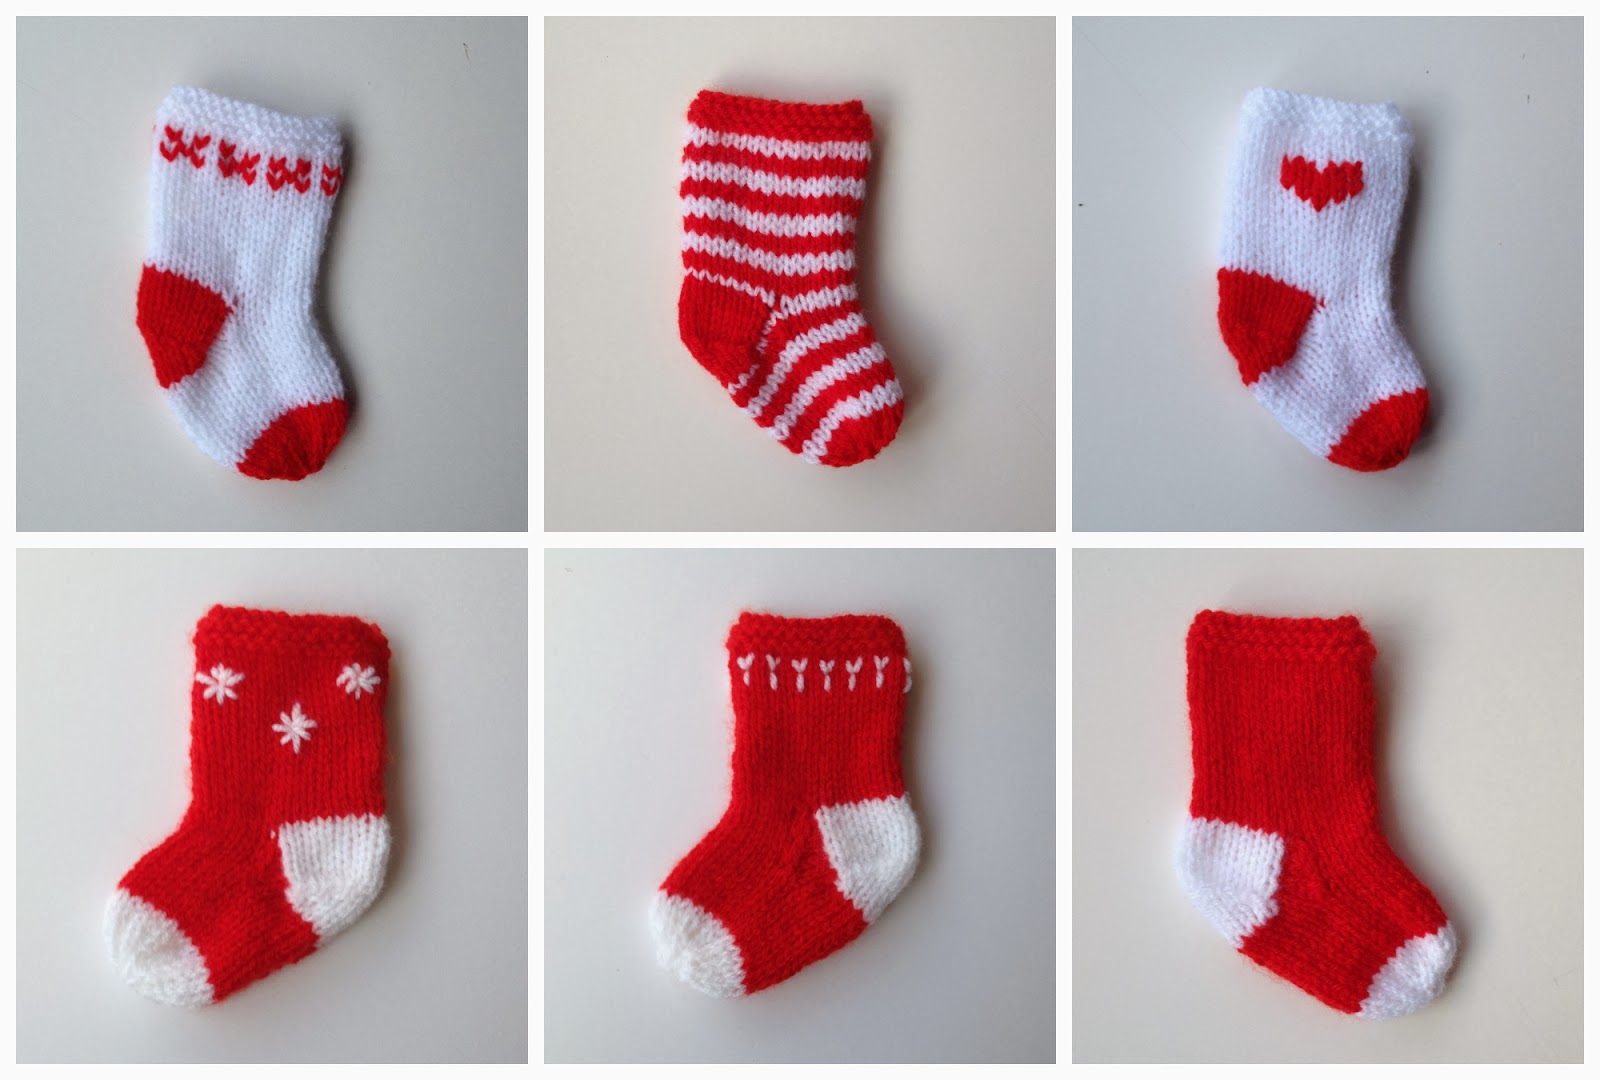 Knit Christmas Stocking Patterns Free : Mack and Mabel: Little Christmas Stockings Knitting Pattern